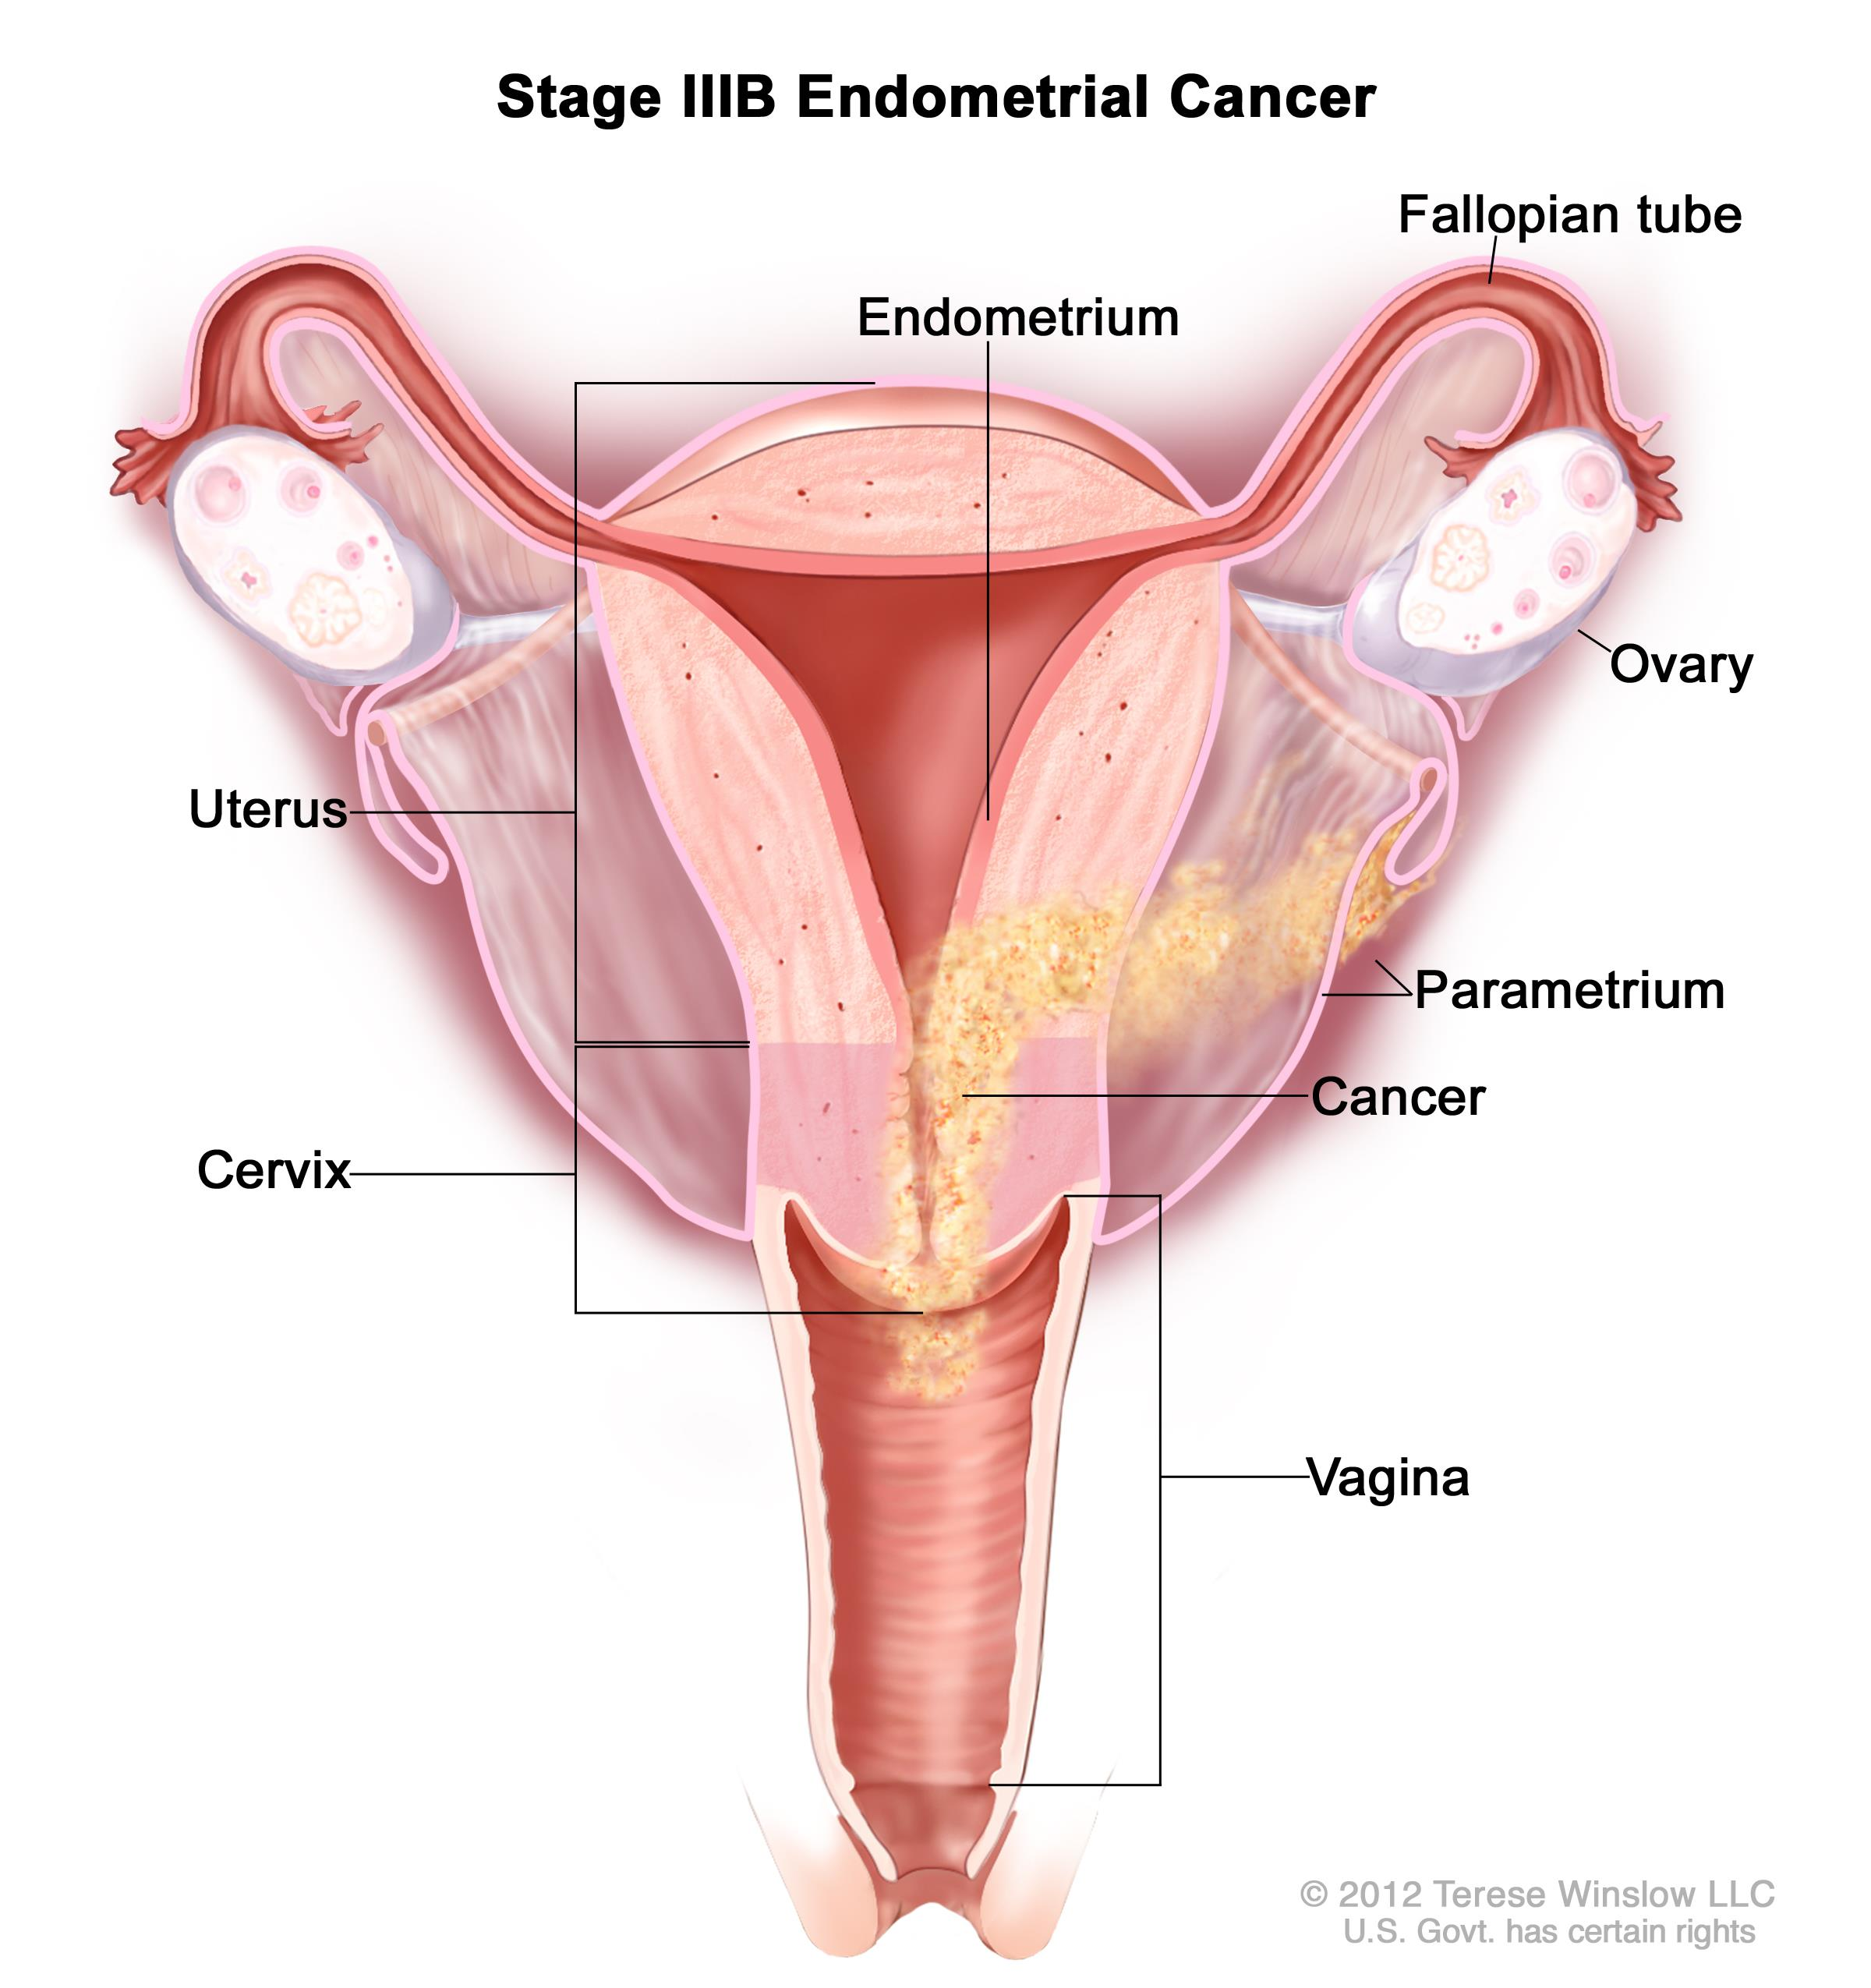 Stage IIIB endometrial cancer shown in a cross-section drawing of the uterus, cervix, fallopian tubes, ovaries, and vagina.  Cancer is shown in the endometrium of the uterus, the parametrium, the cervix, and the vagina.